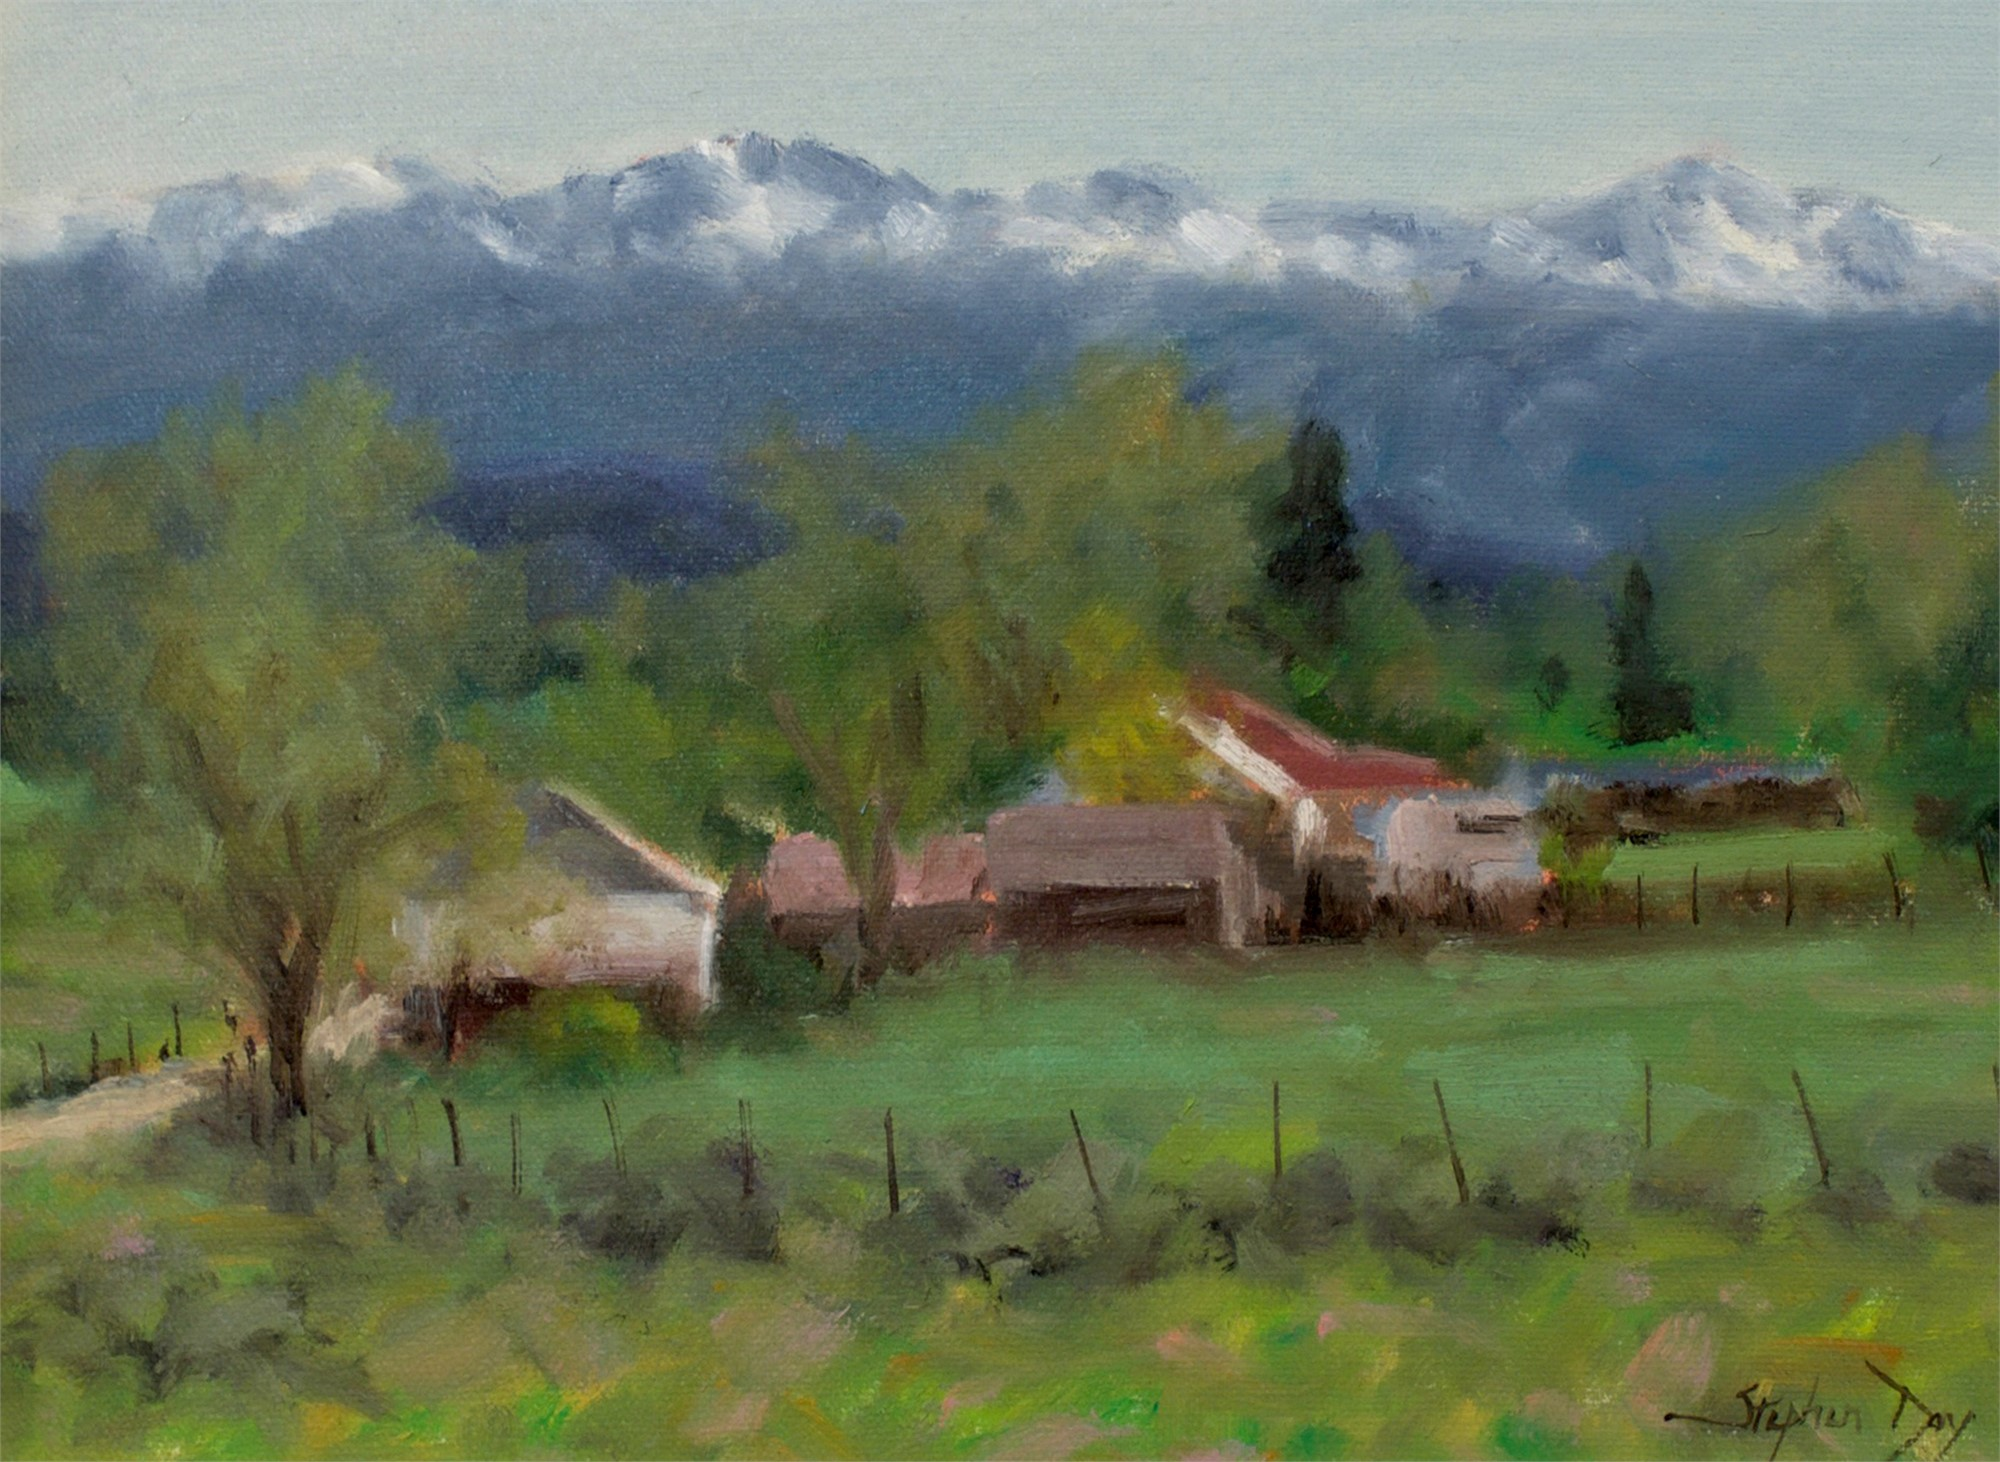 Valley Ranch by Stephen Day